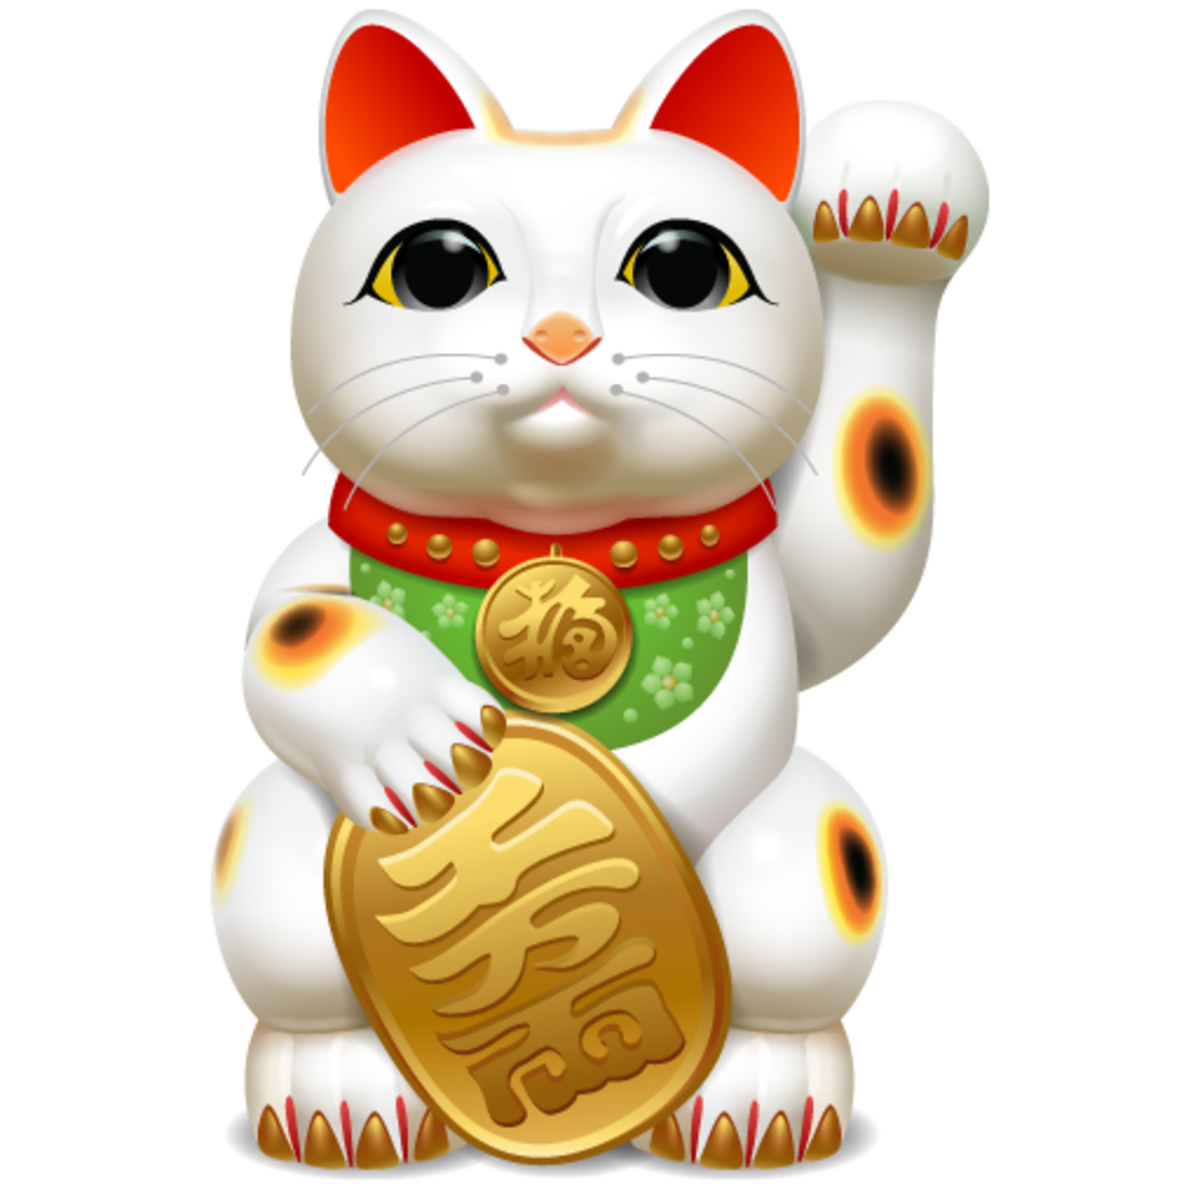 The higher the paw is raised, the more wealth, luck and prosperity Maneki Neko will bring you. The coin attracts wealth.